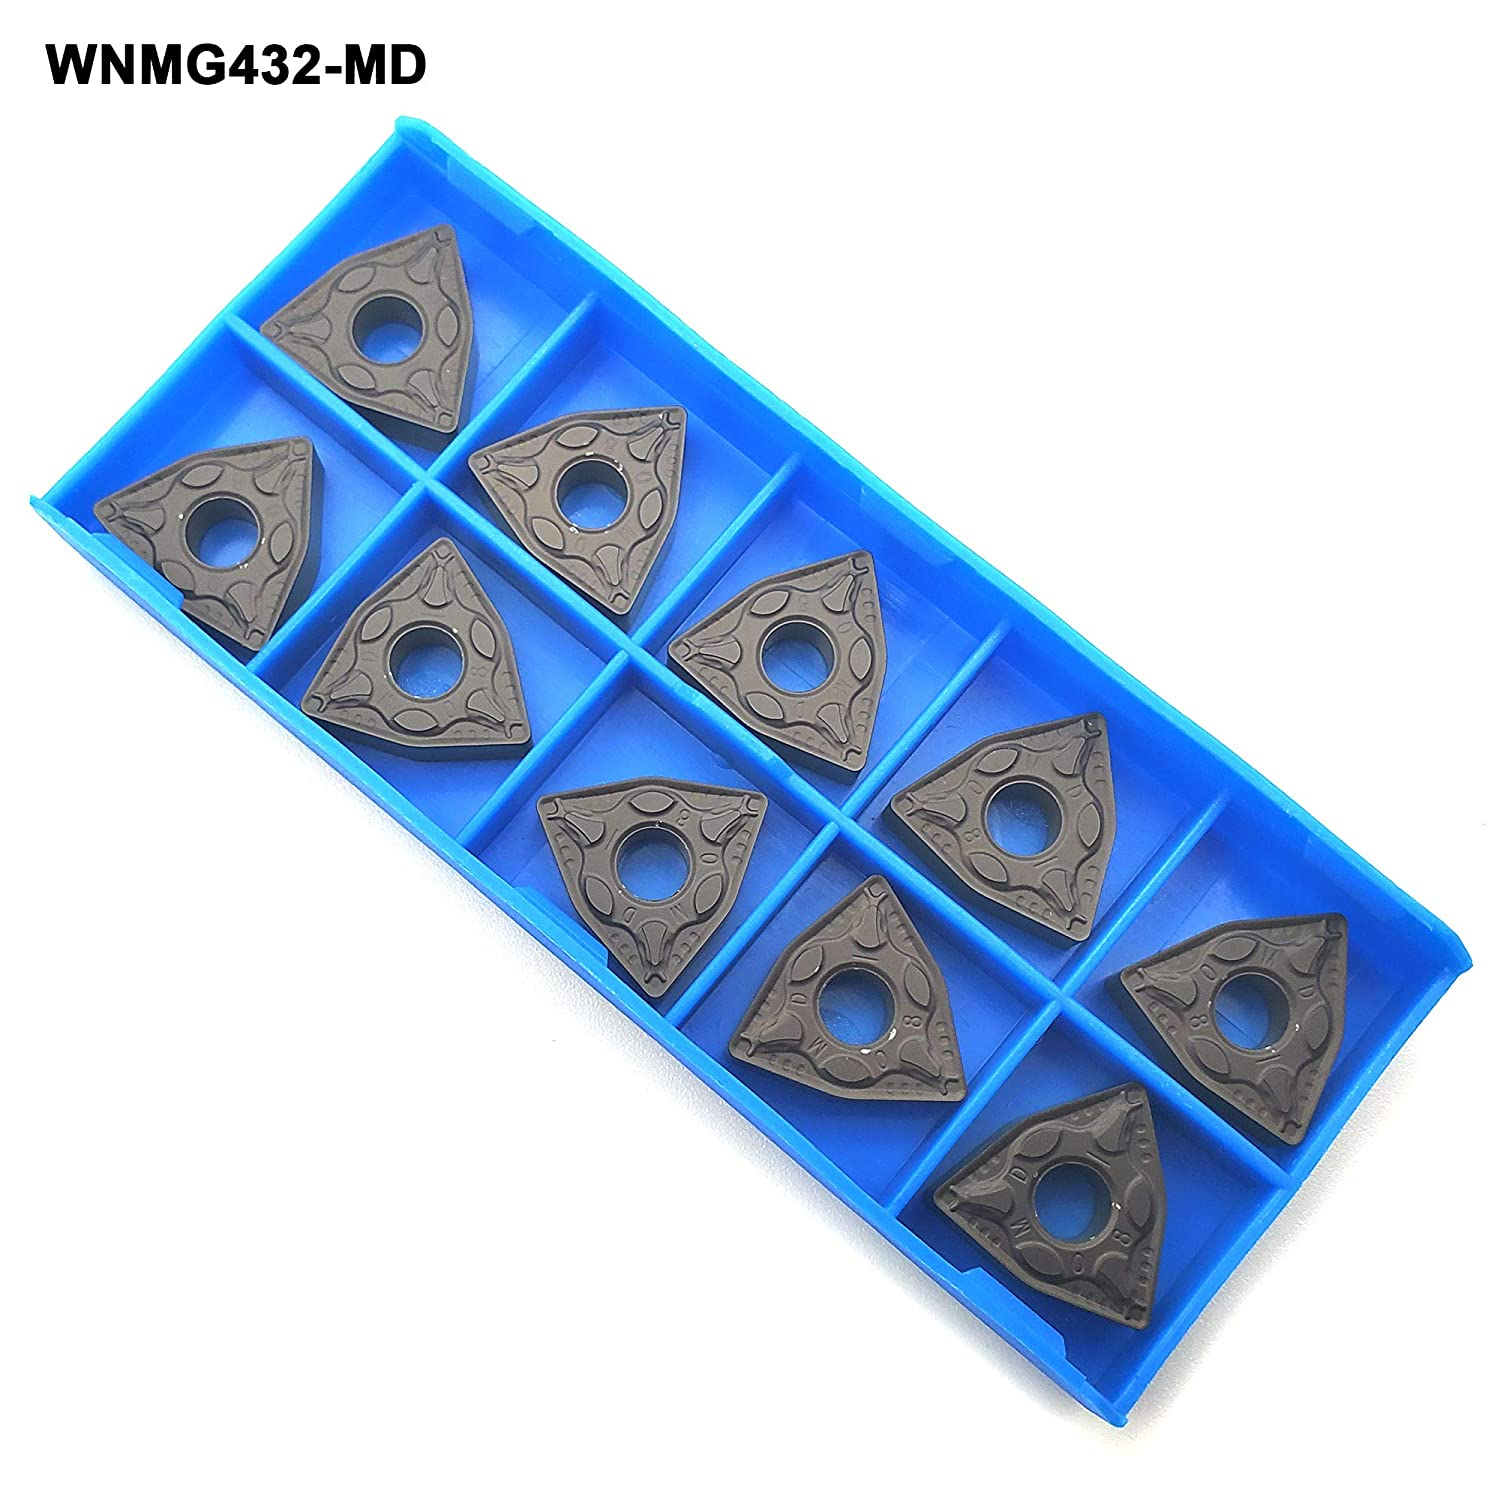 WNMG080408 for Turning Cutting Tools 10 PCS FomaSP Carbide Inserts for Steel WNMG432